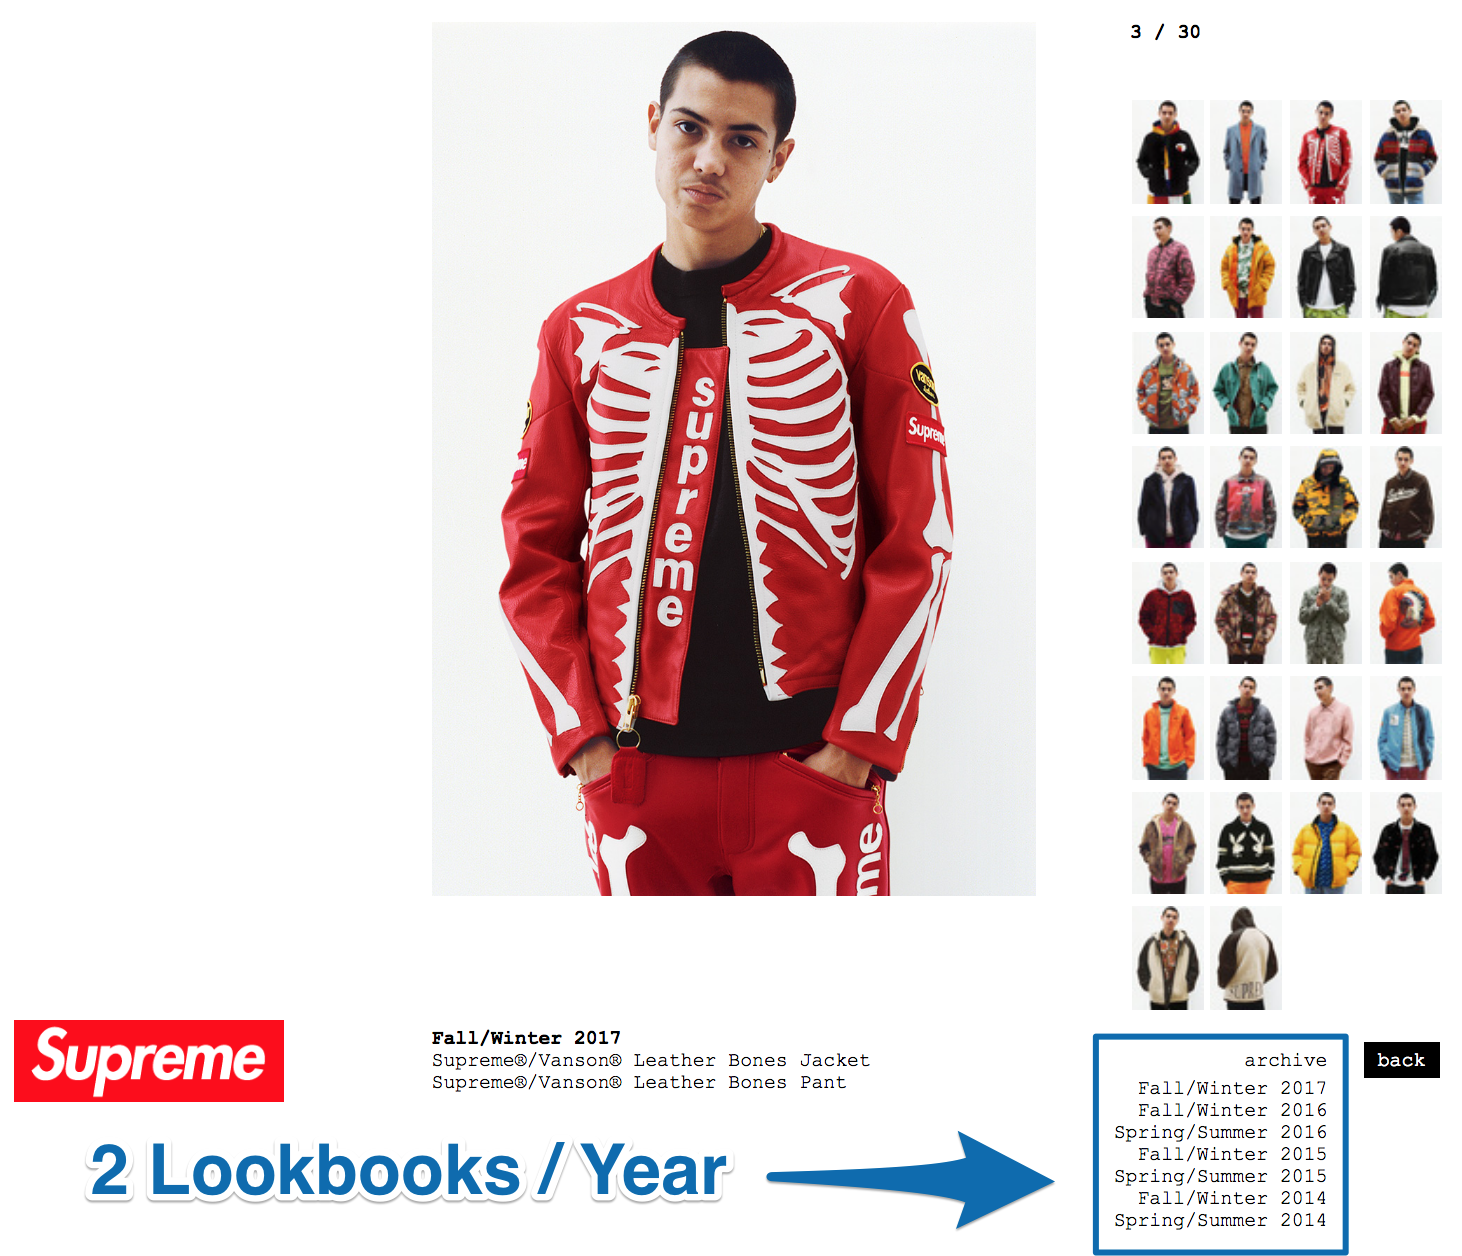 Screenshot showing the lookbooks for a certain piece of clothing by Supreme